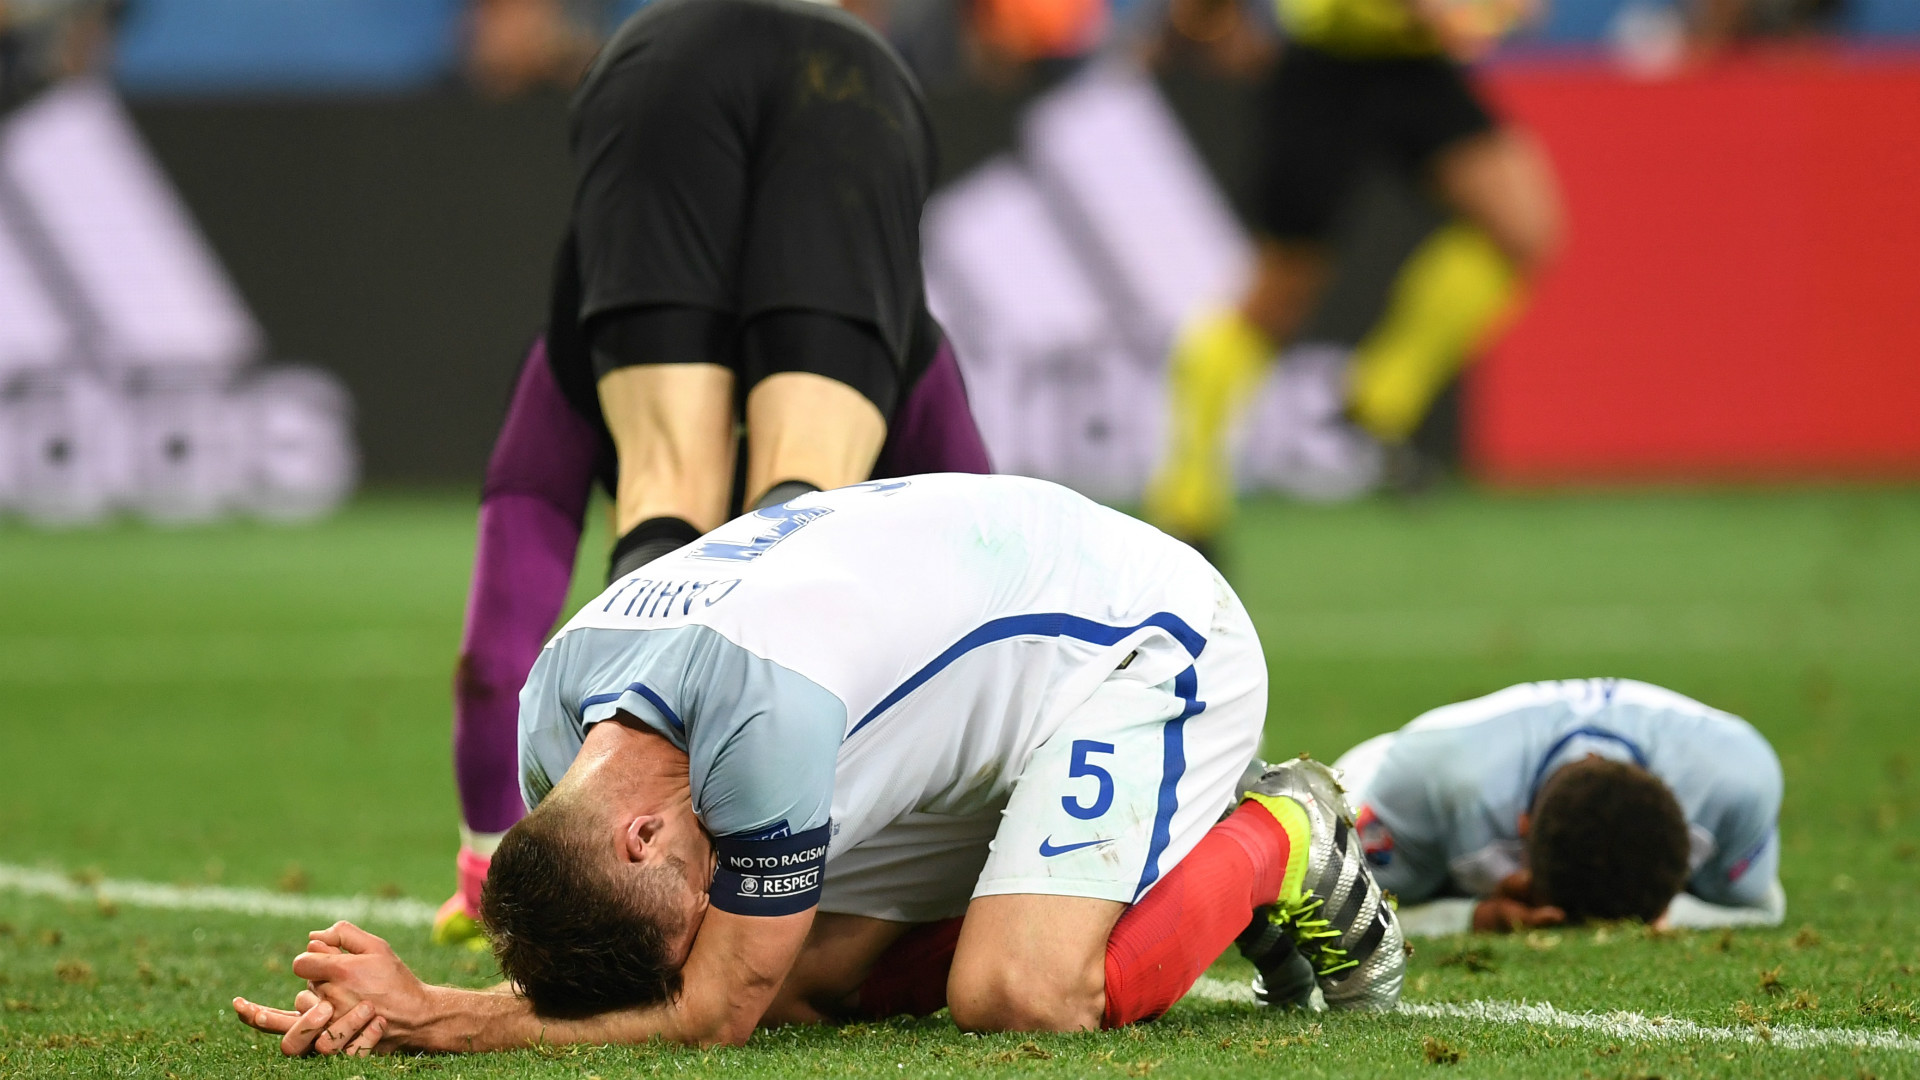 Over 200,000 fans sign petition demanding England-Colombia replay